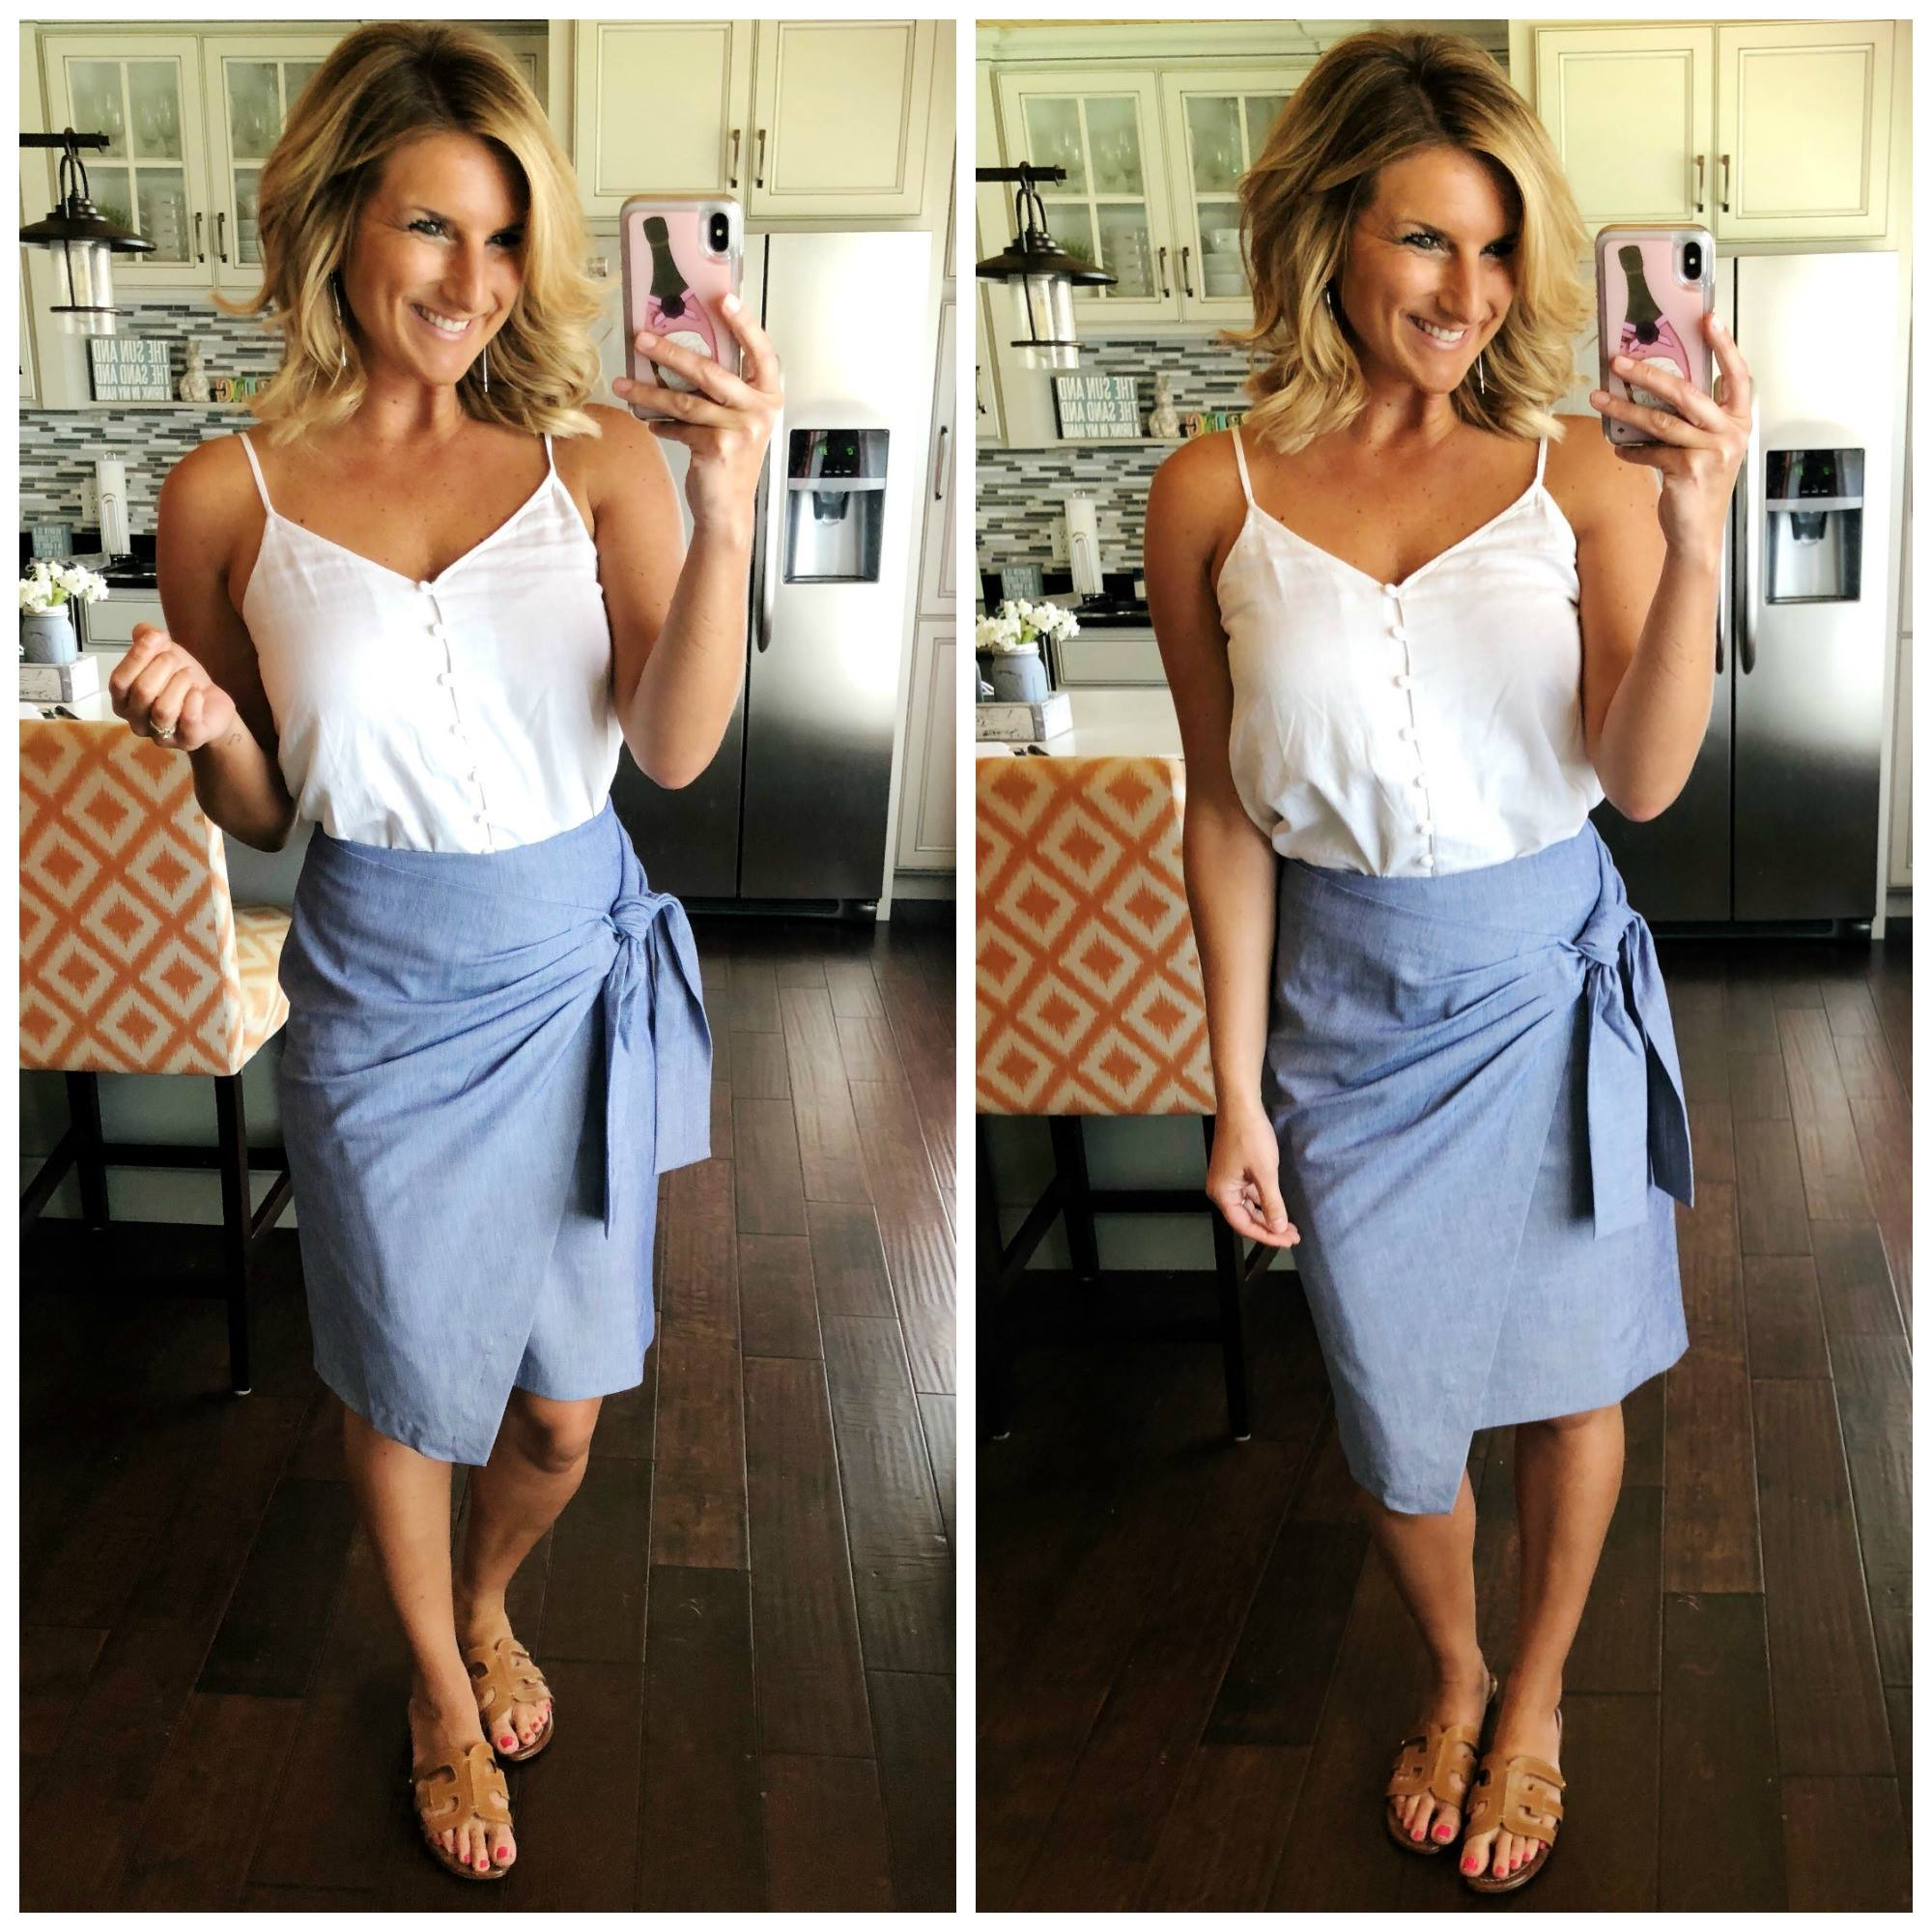 Business Casual Outfit // What to Wear to Work // Button Up Camisole with a Pencil Skirt and Slide Sandals // How to Tuck a Top into a Skirt